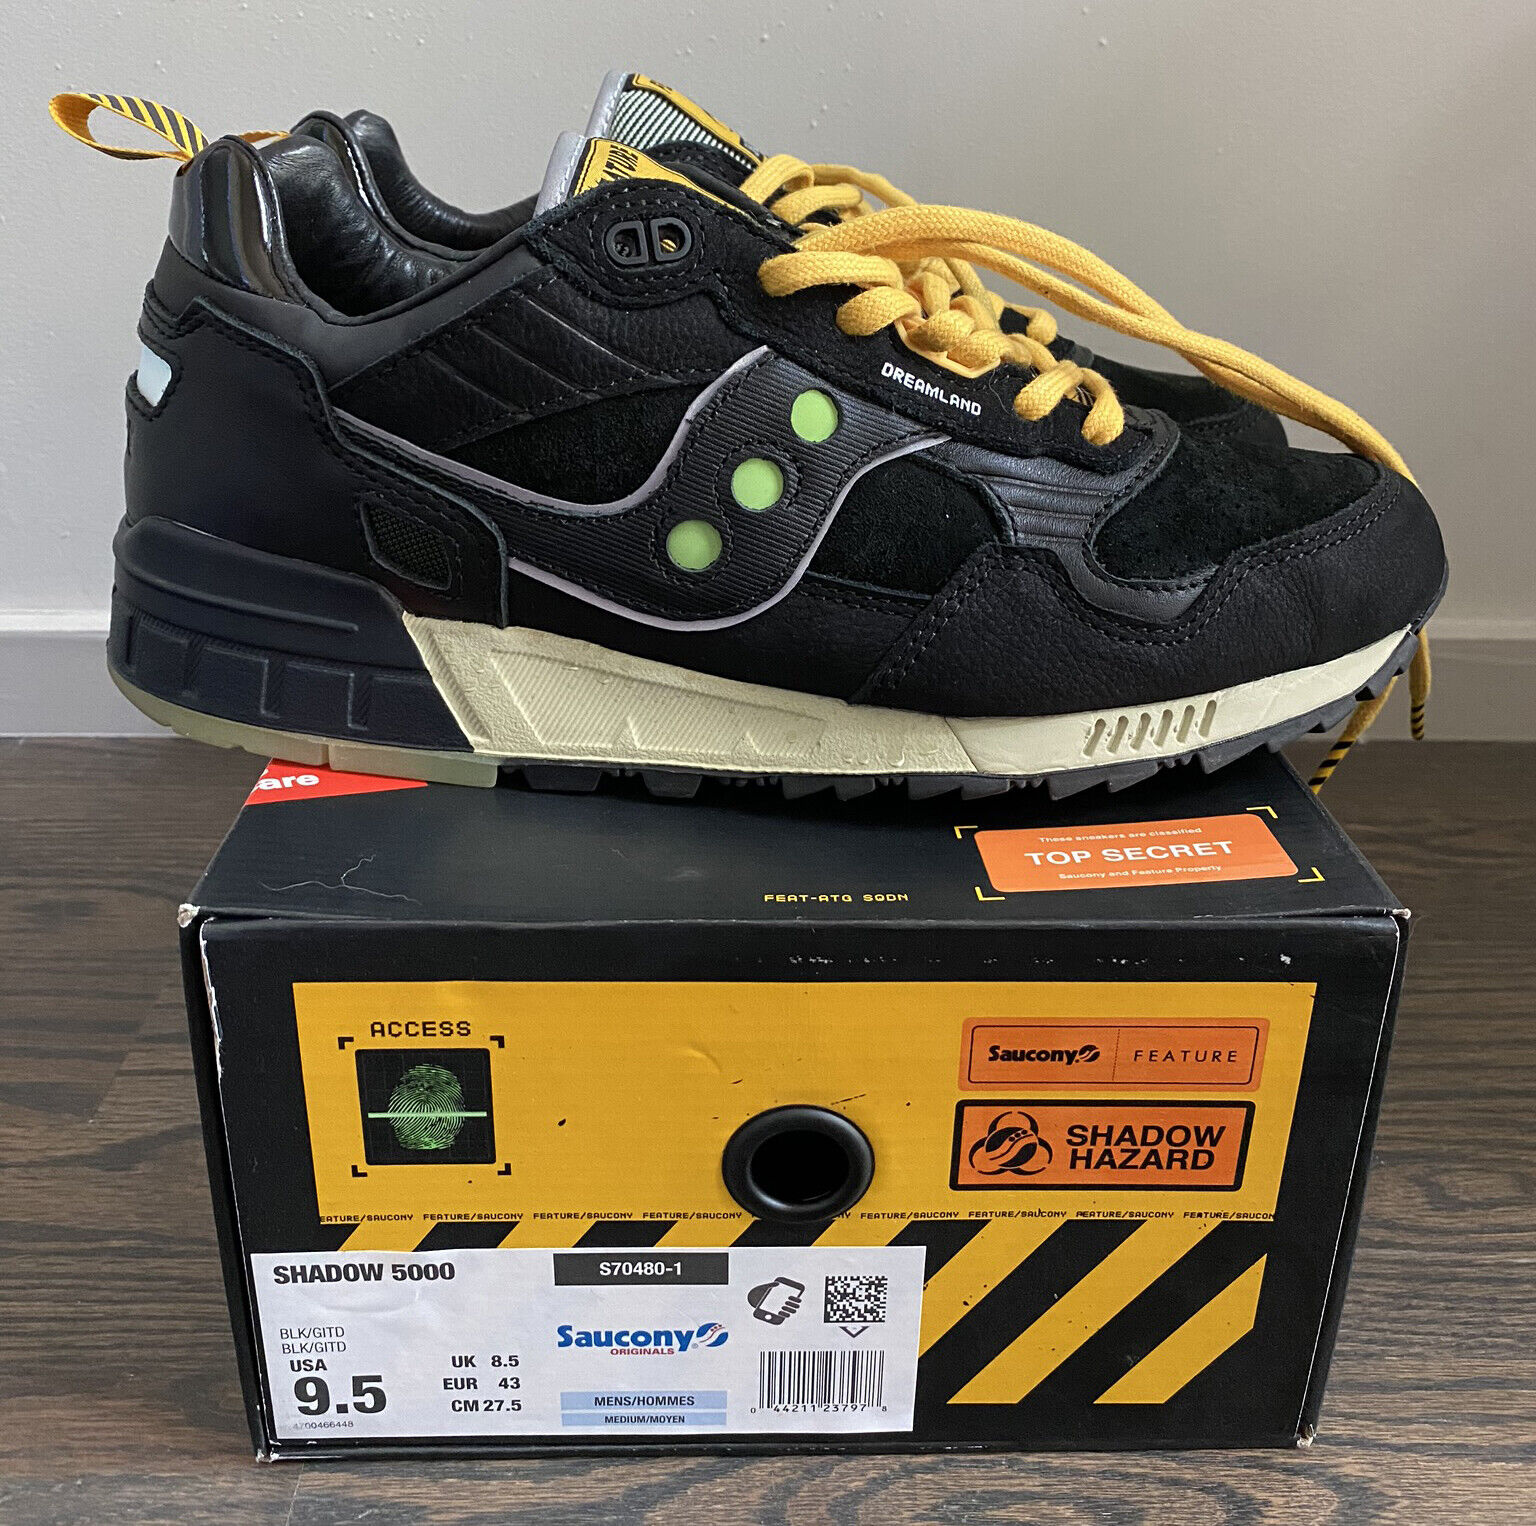 Feature x Saucony Shadow 5000 Dreamland Size 9.5 Worn Once